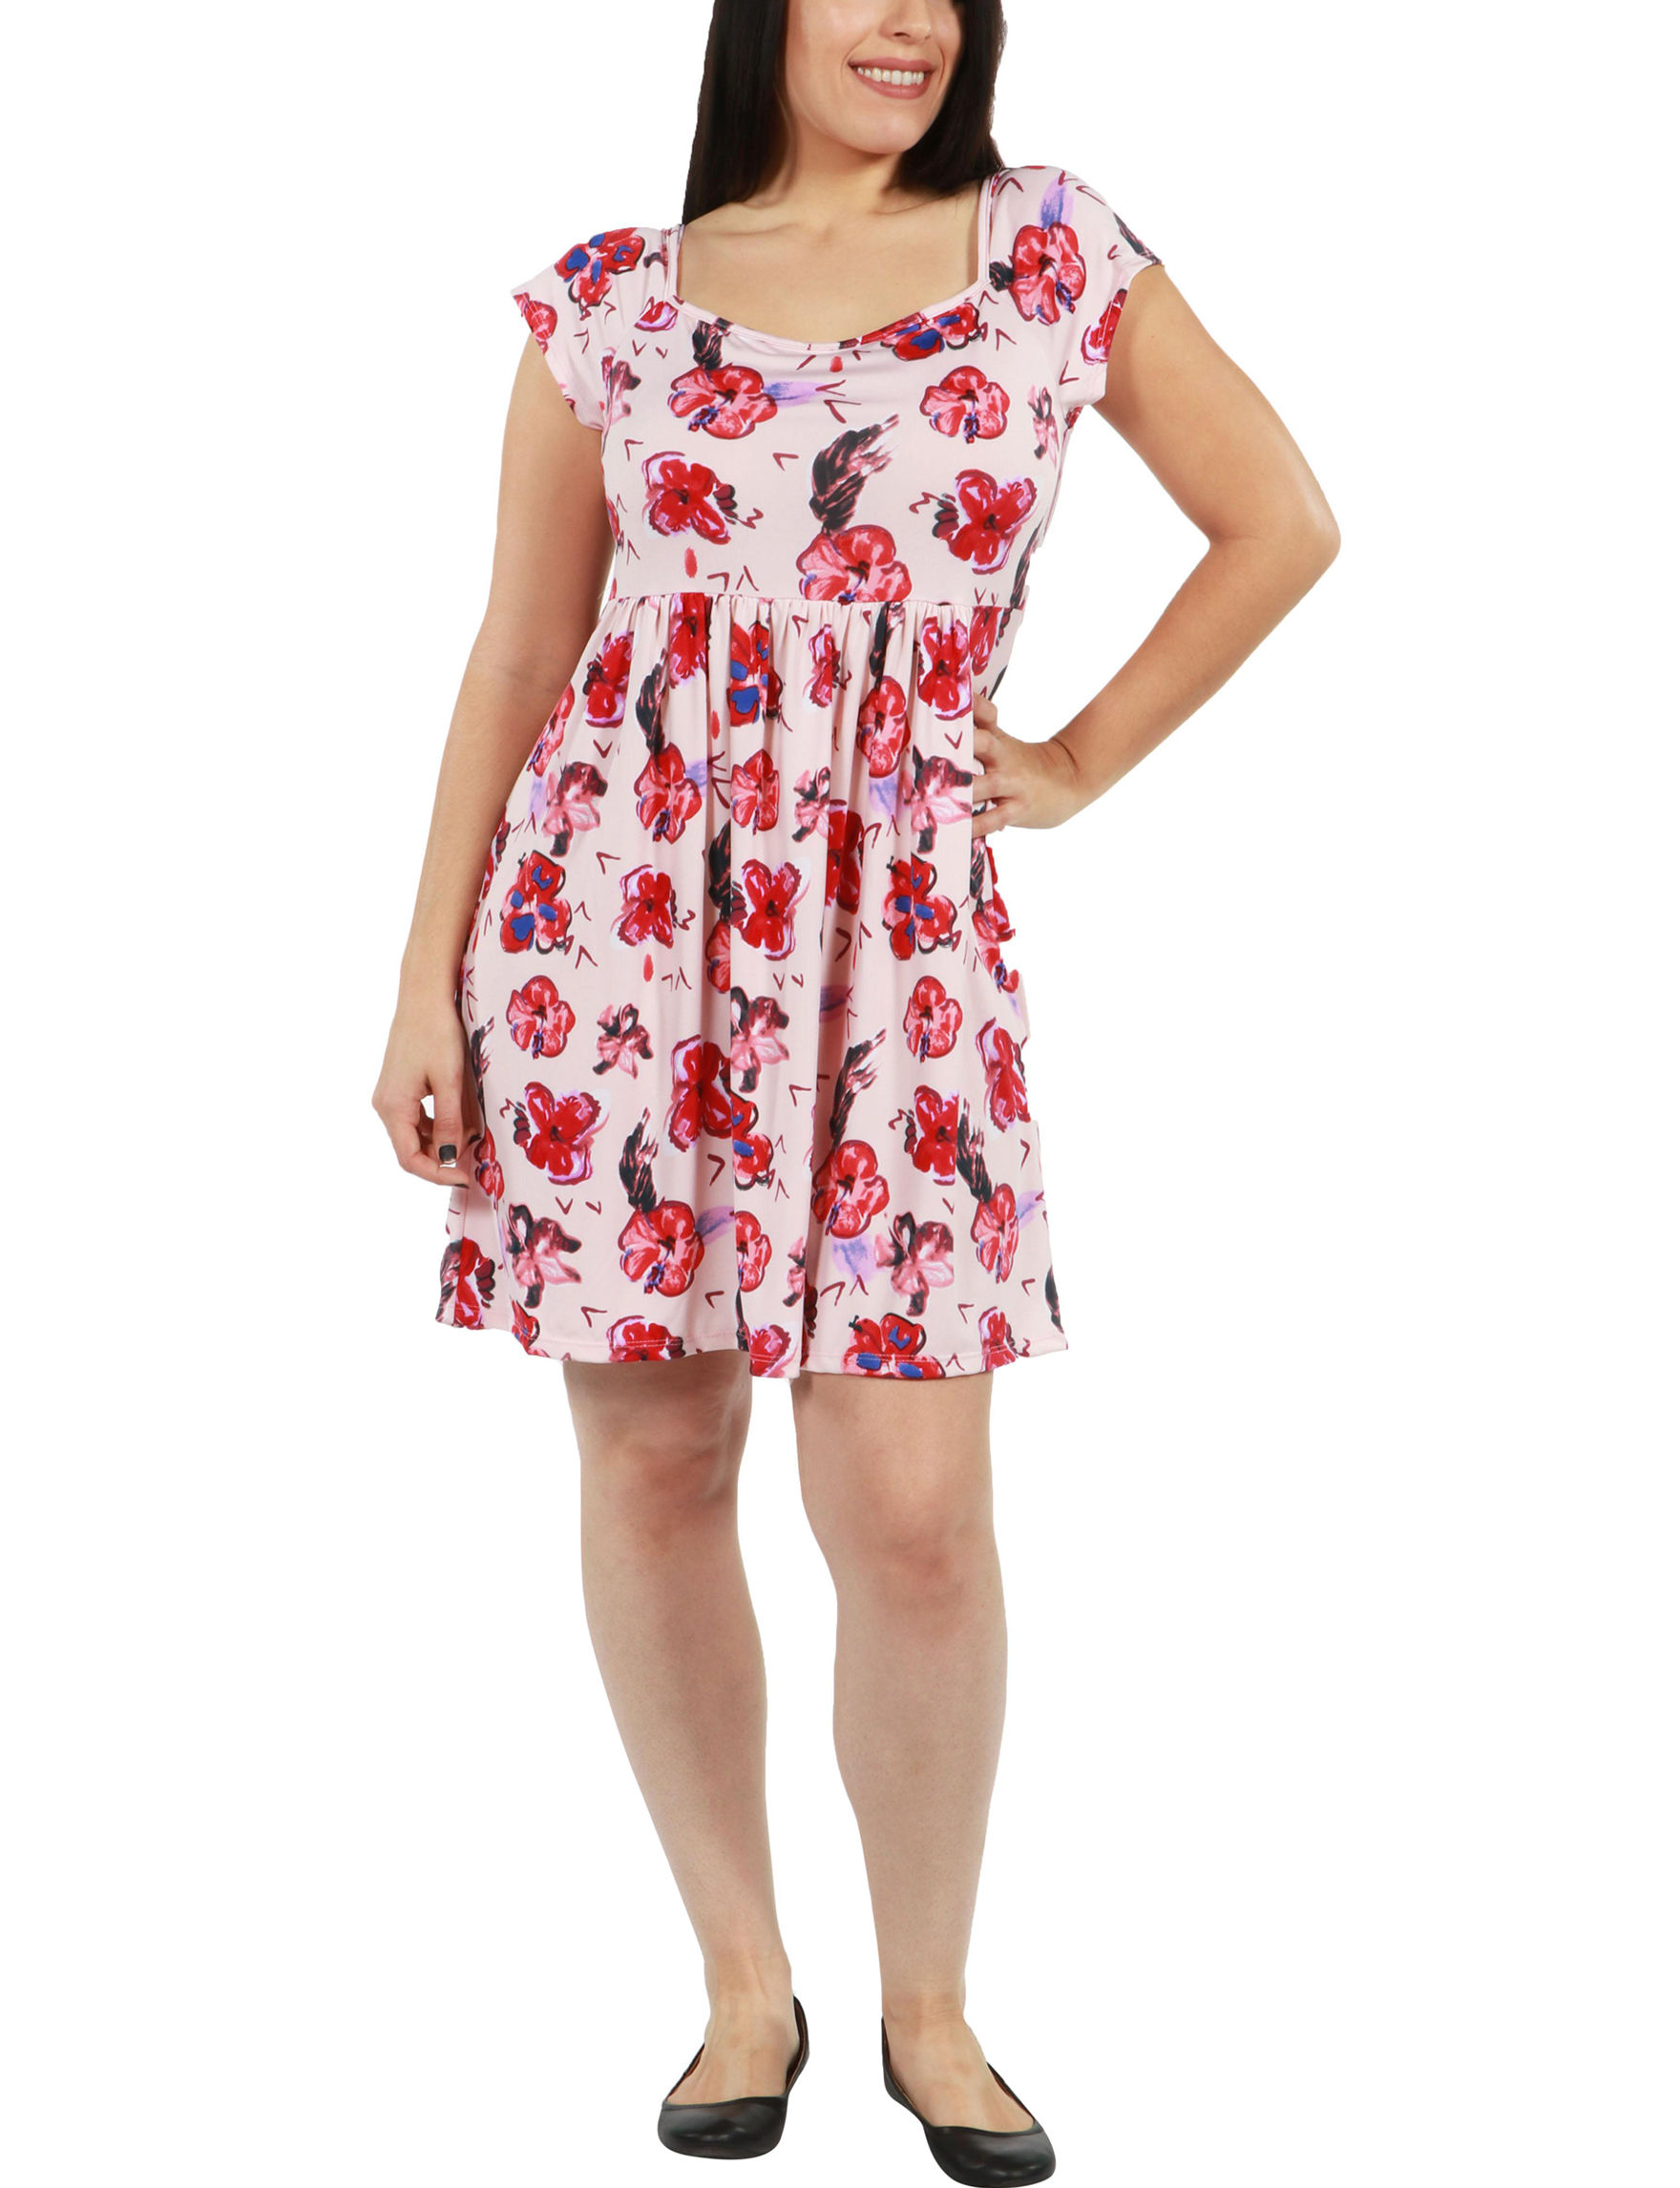 24Seven Comfort Apparel Pink Multi Everyday & Casual A-line Dresses